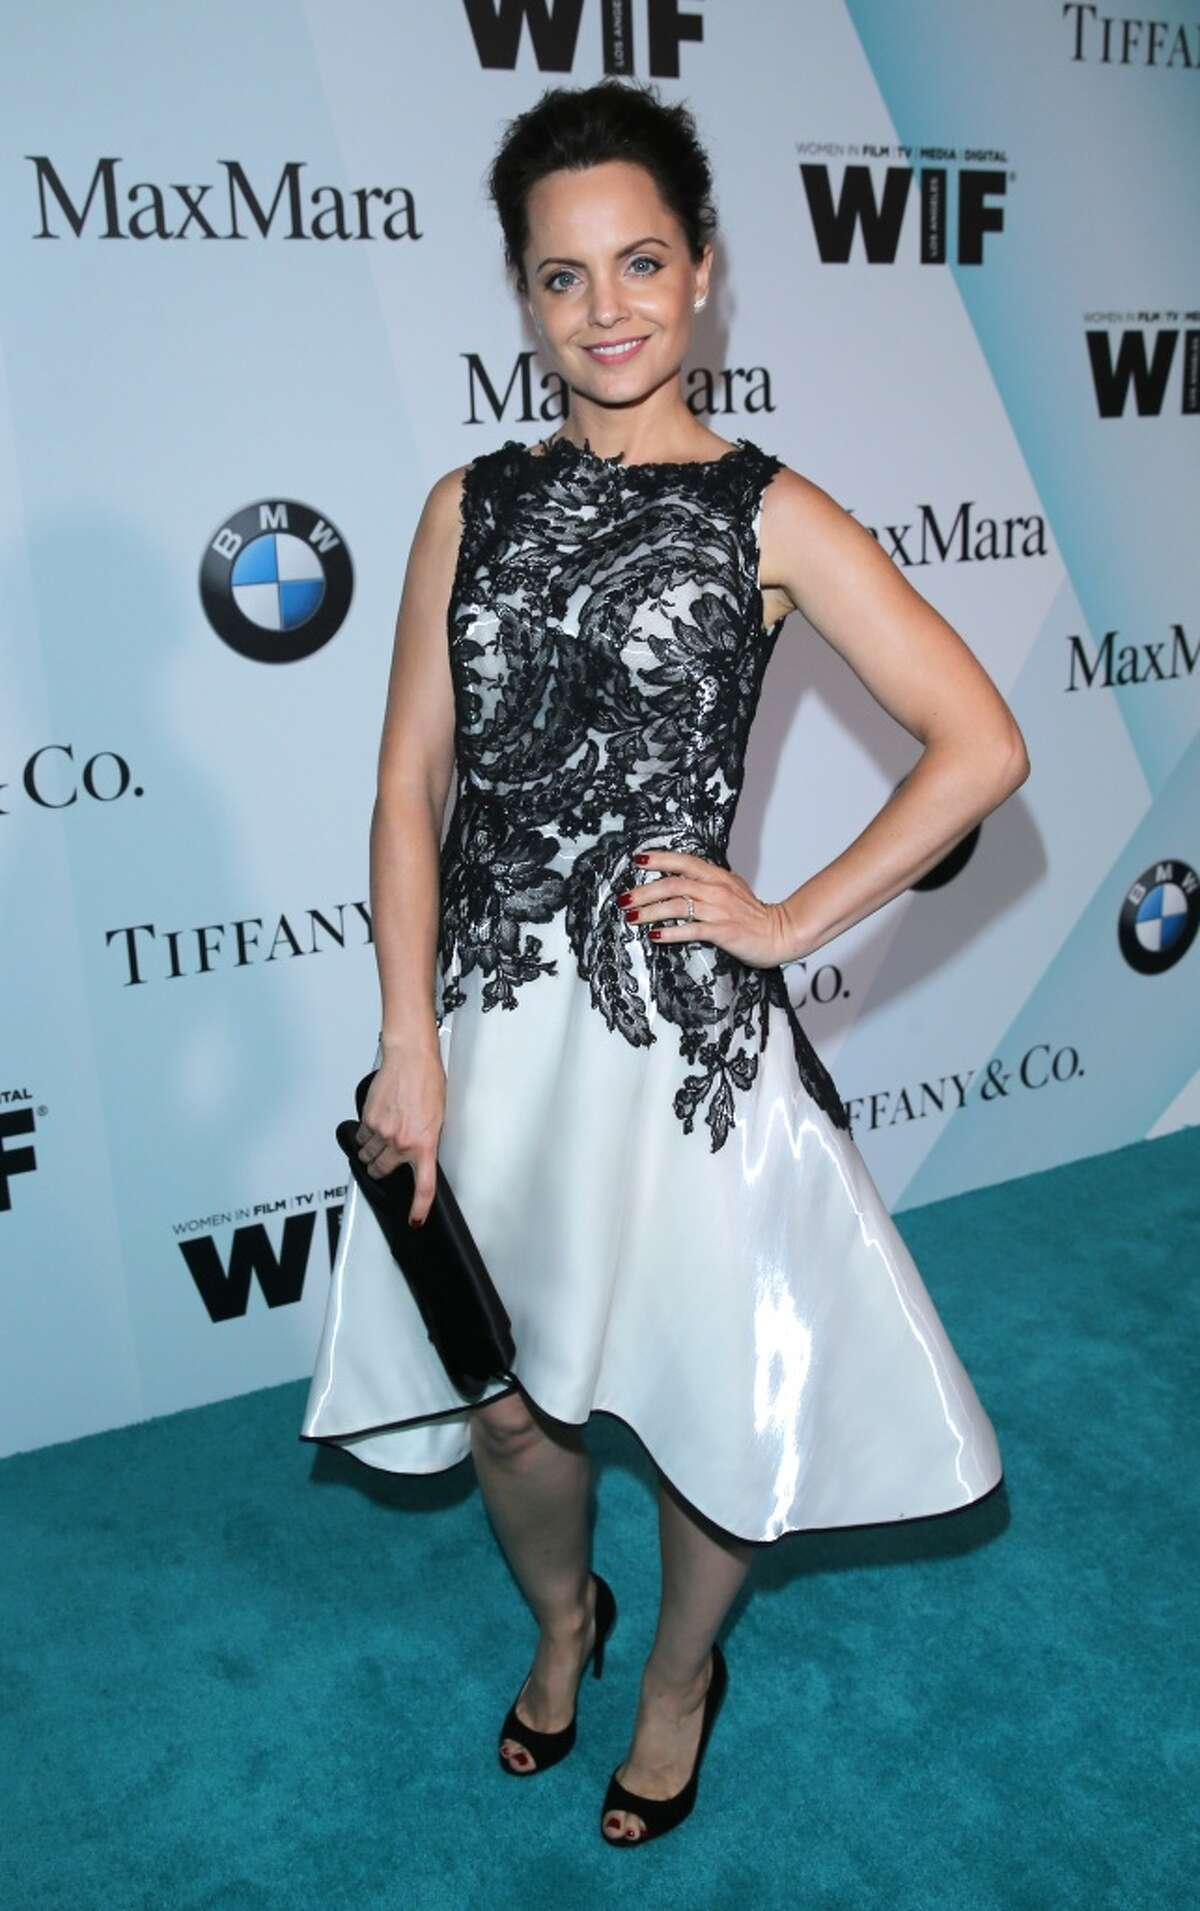 Actress Mena Suvari attends Women In Film 2015 Crystal + Lucy Awards Presented by Max Mara, BMW of North America, and Tiffany & Co. at the Hyatt Regency Century Plaza on June 16, 2015 in Century City, California. (Photo by Mark Davis/Getty Images for Women in Film)